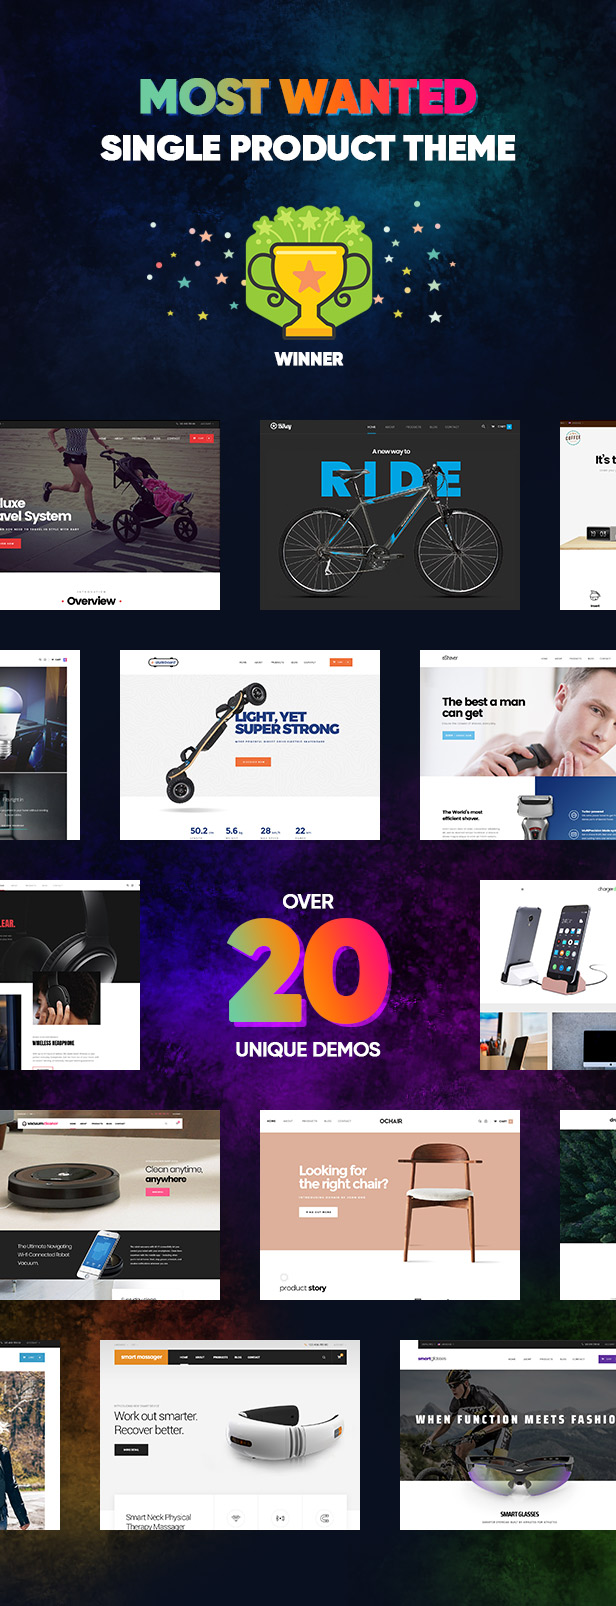 Single product ecommerce wordpress theme Most Wanted contest